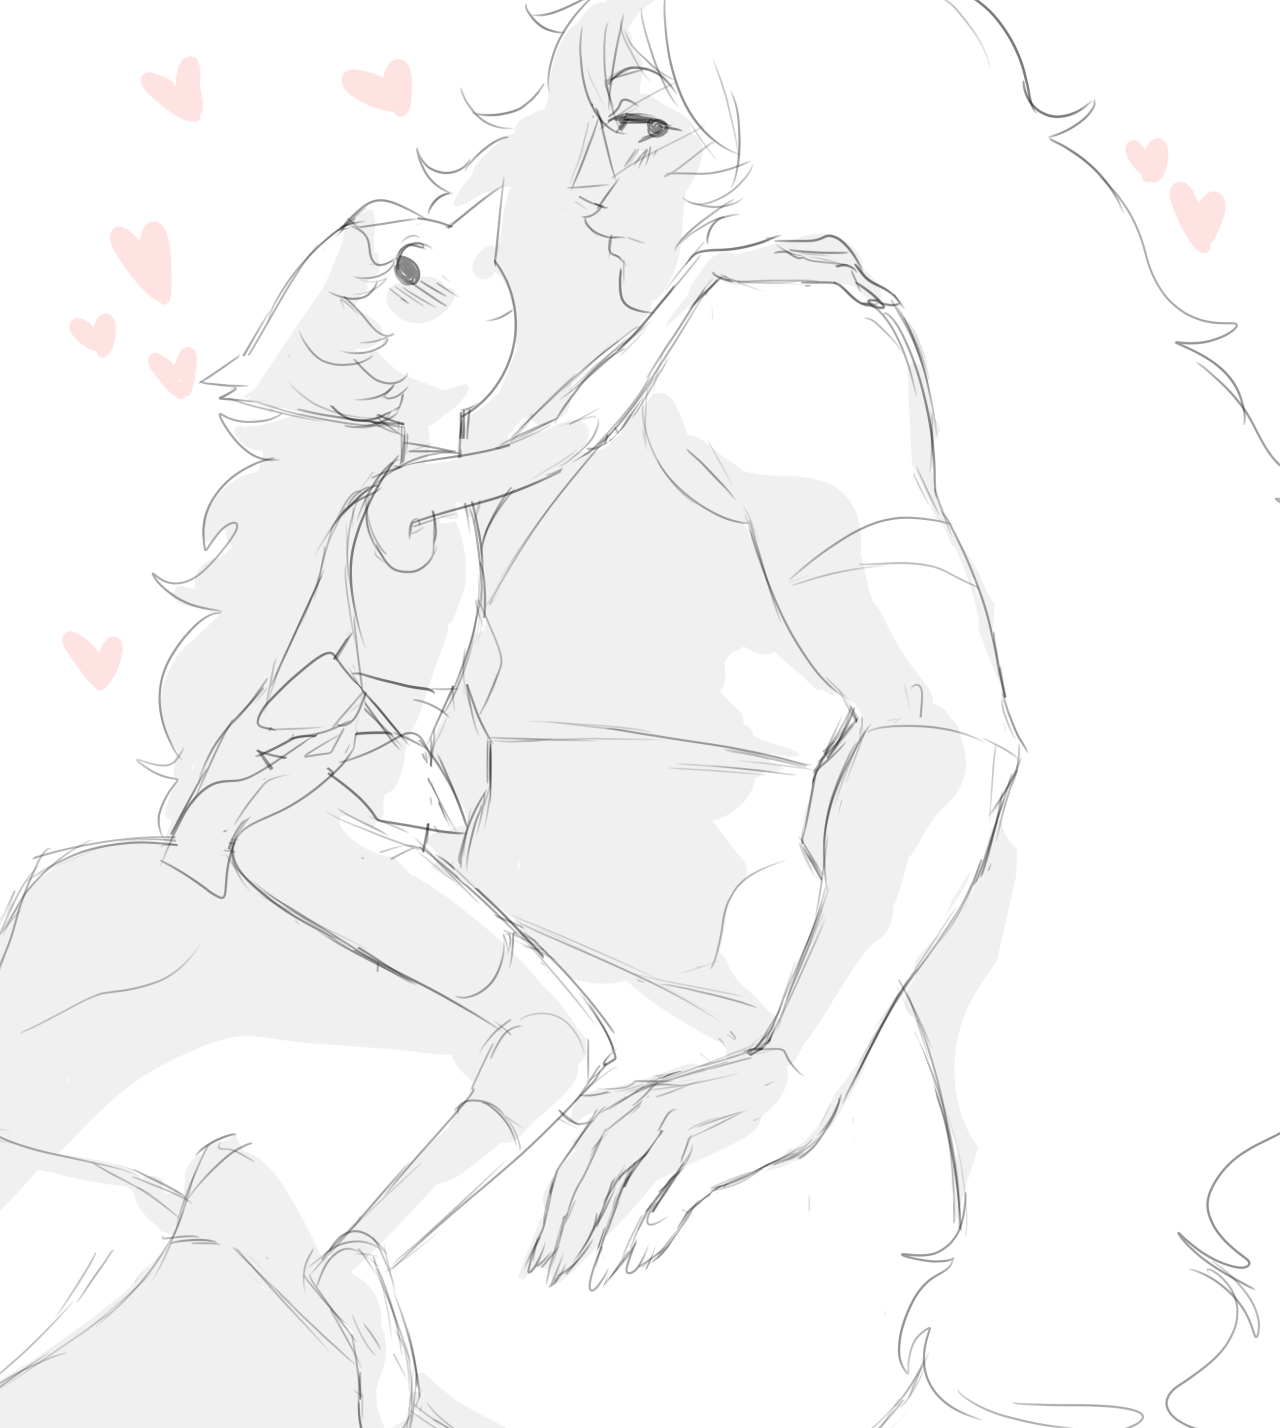 i reaaaaaaally missed drawing jaspearl so i thought id sketch them before i went to bed (i guess pearl likes to be bounced on jaspers huge thigh????)